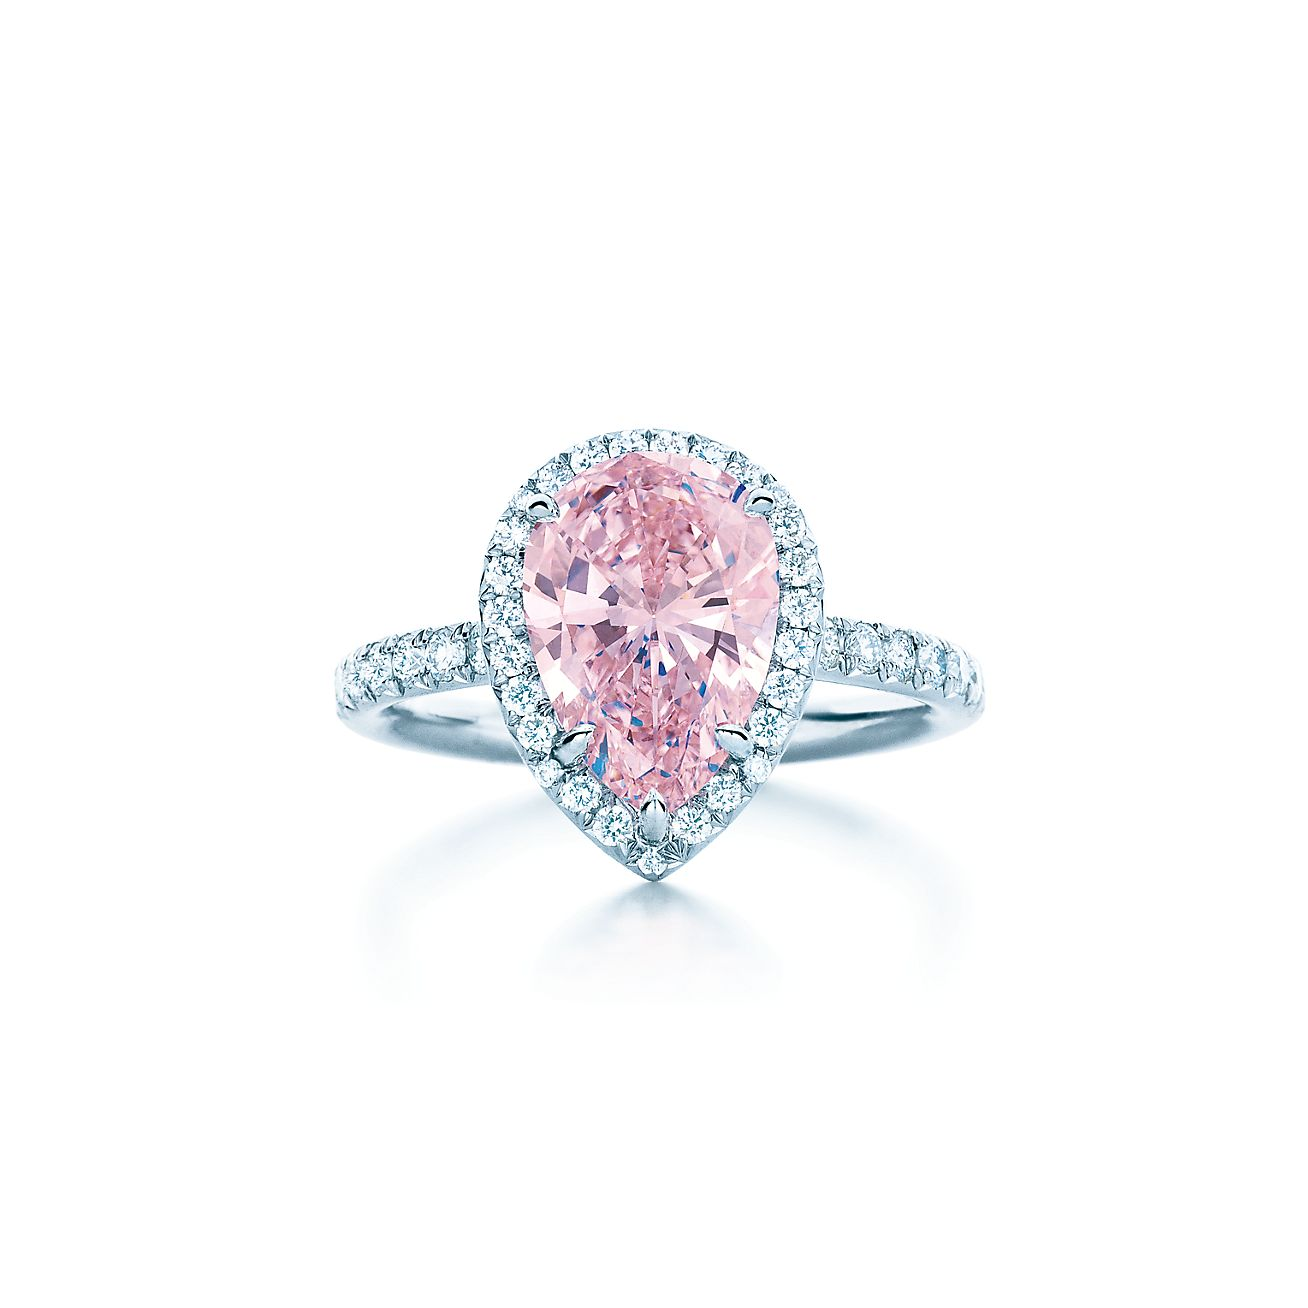 pear shaped diamond rings tiffany jewellery en wedding rings tiffany pear shaped pink diamond ring in platinum with white diamonds